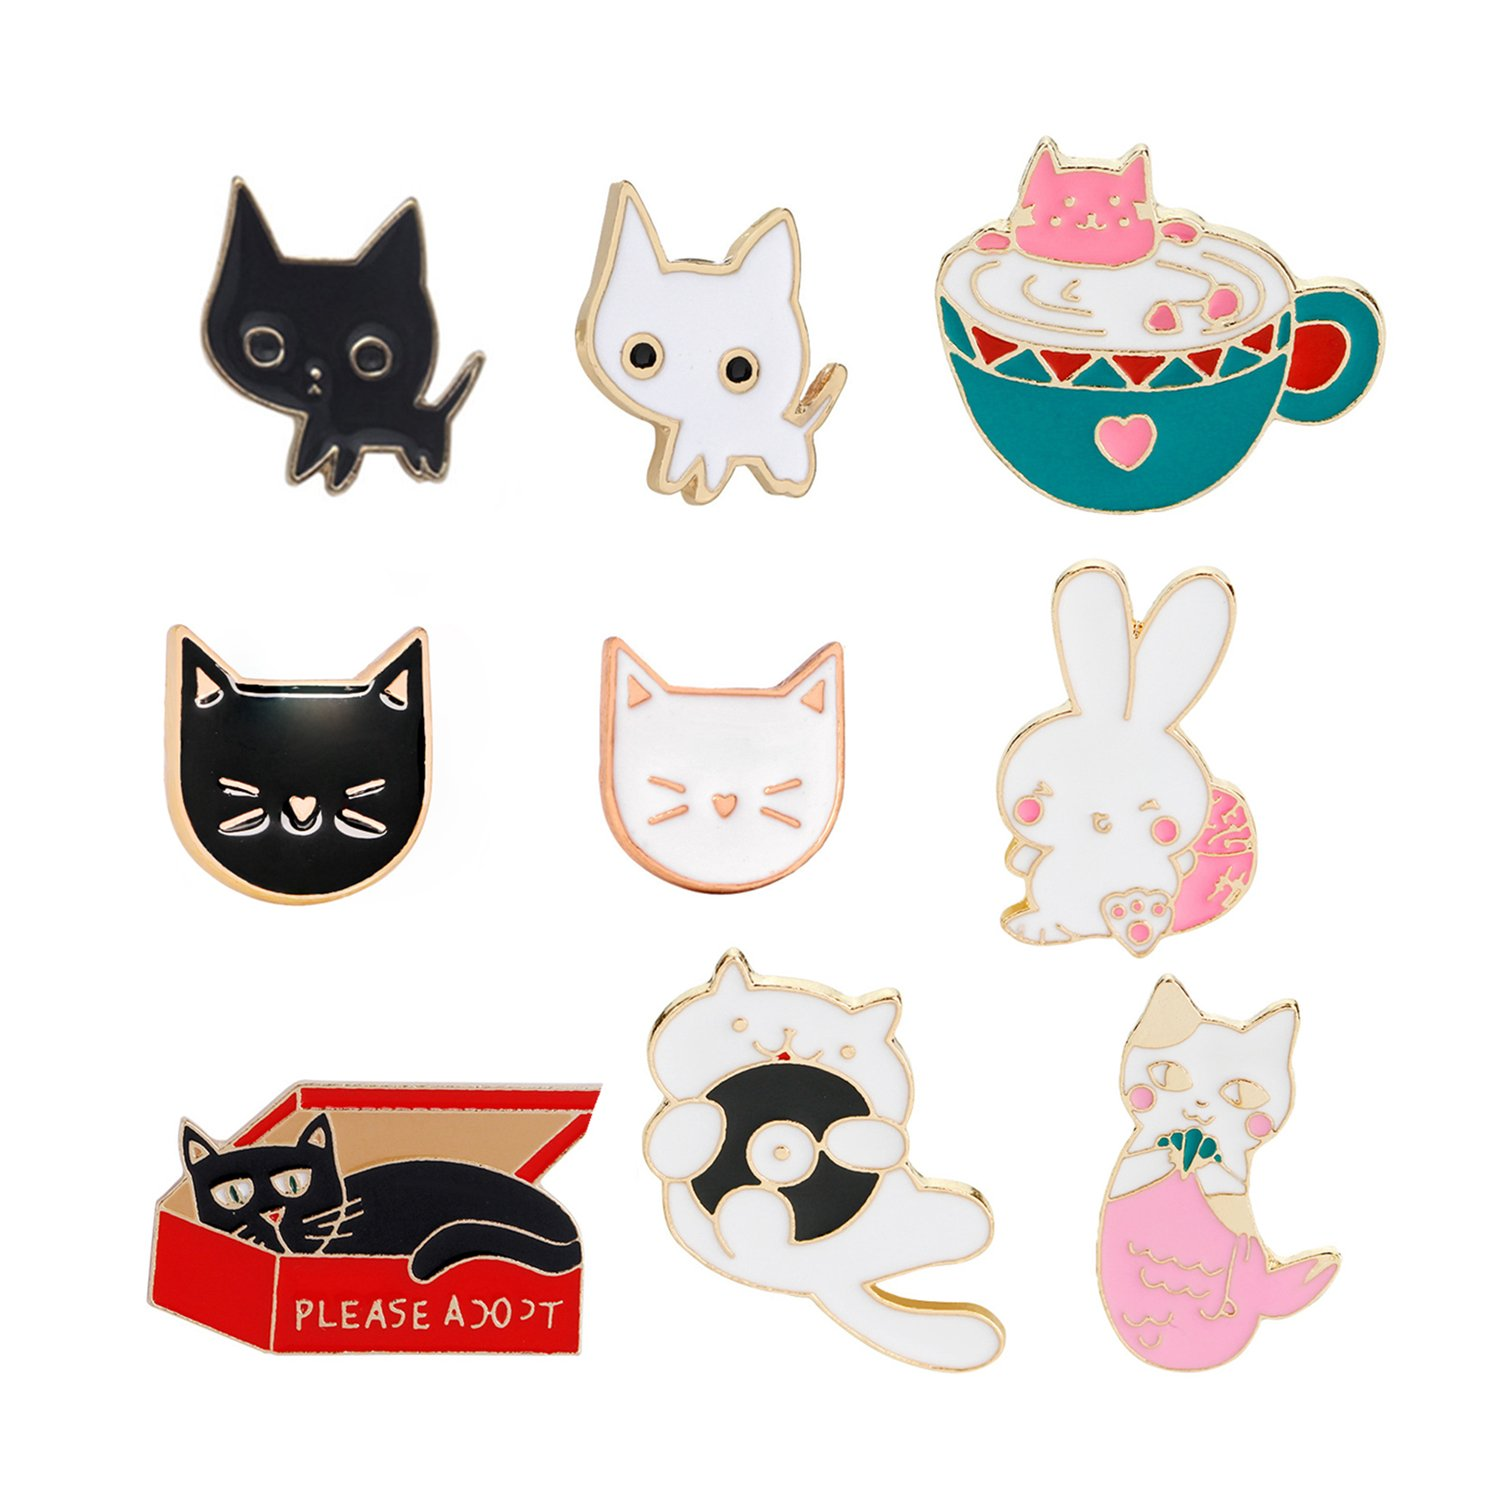 Lovely Cat Brooch Set Cute Cartoon Kitty Rabbit Brooch Pins Enamel Brooches Lapel Pins Clothes Bags Decoration Gifts For Woemn Girls By JoinLove